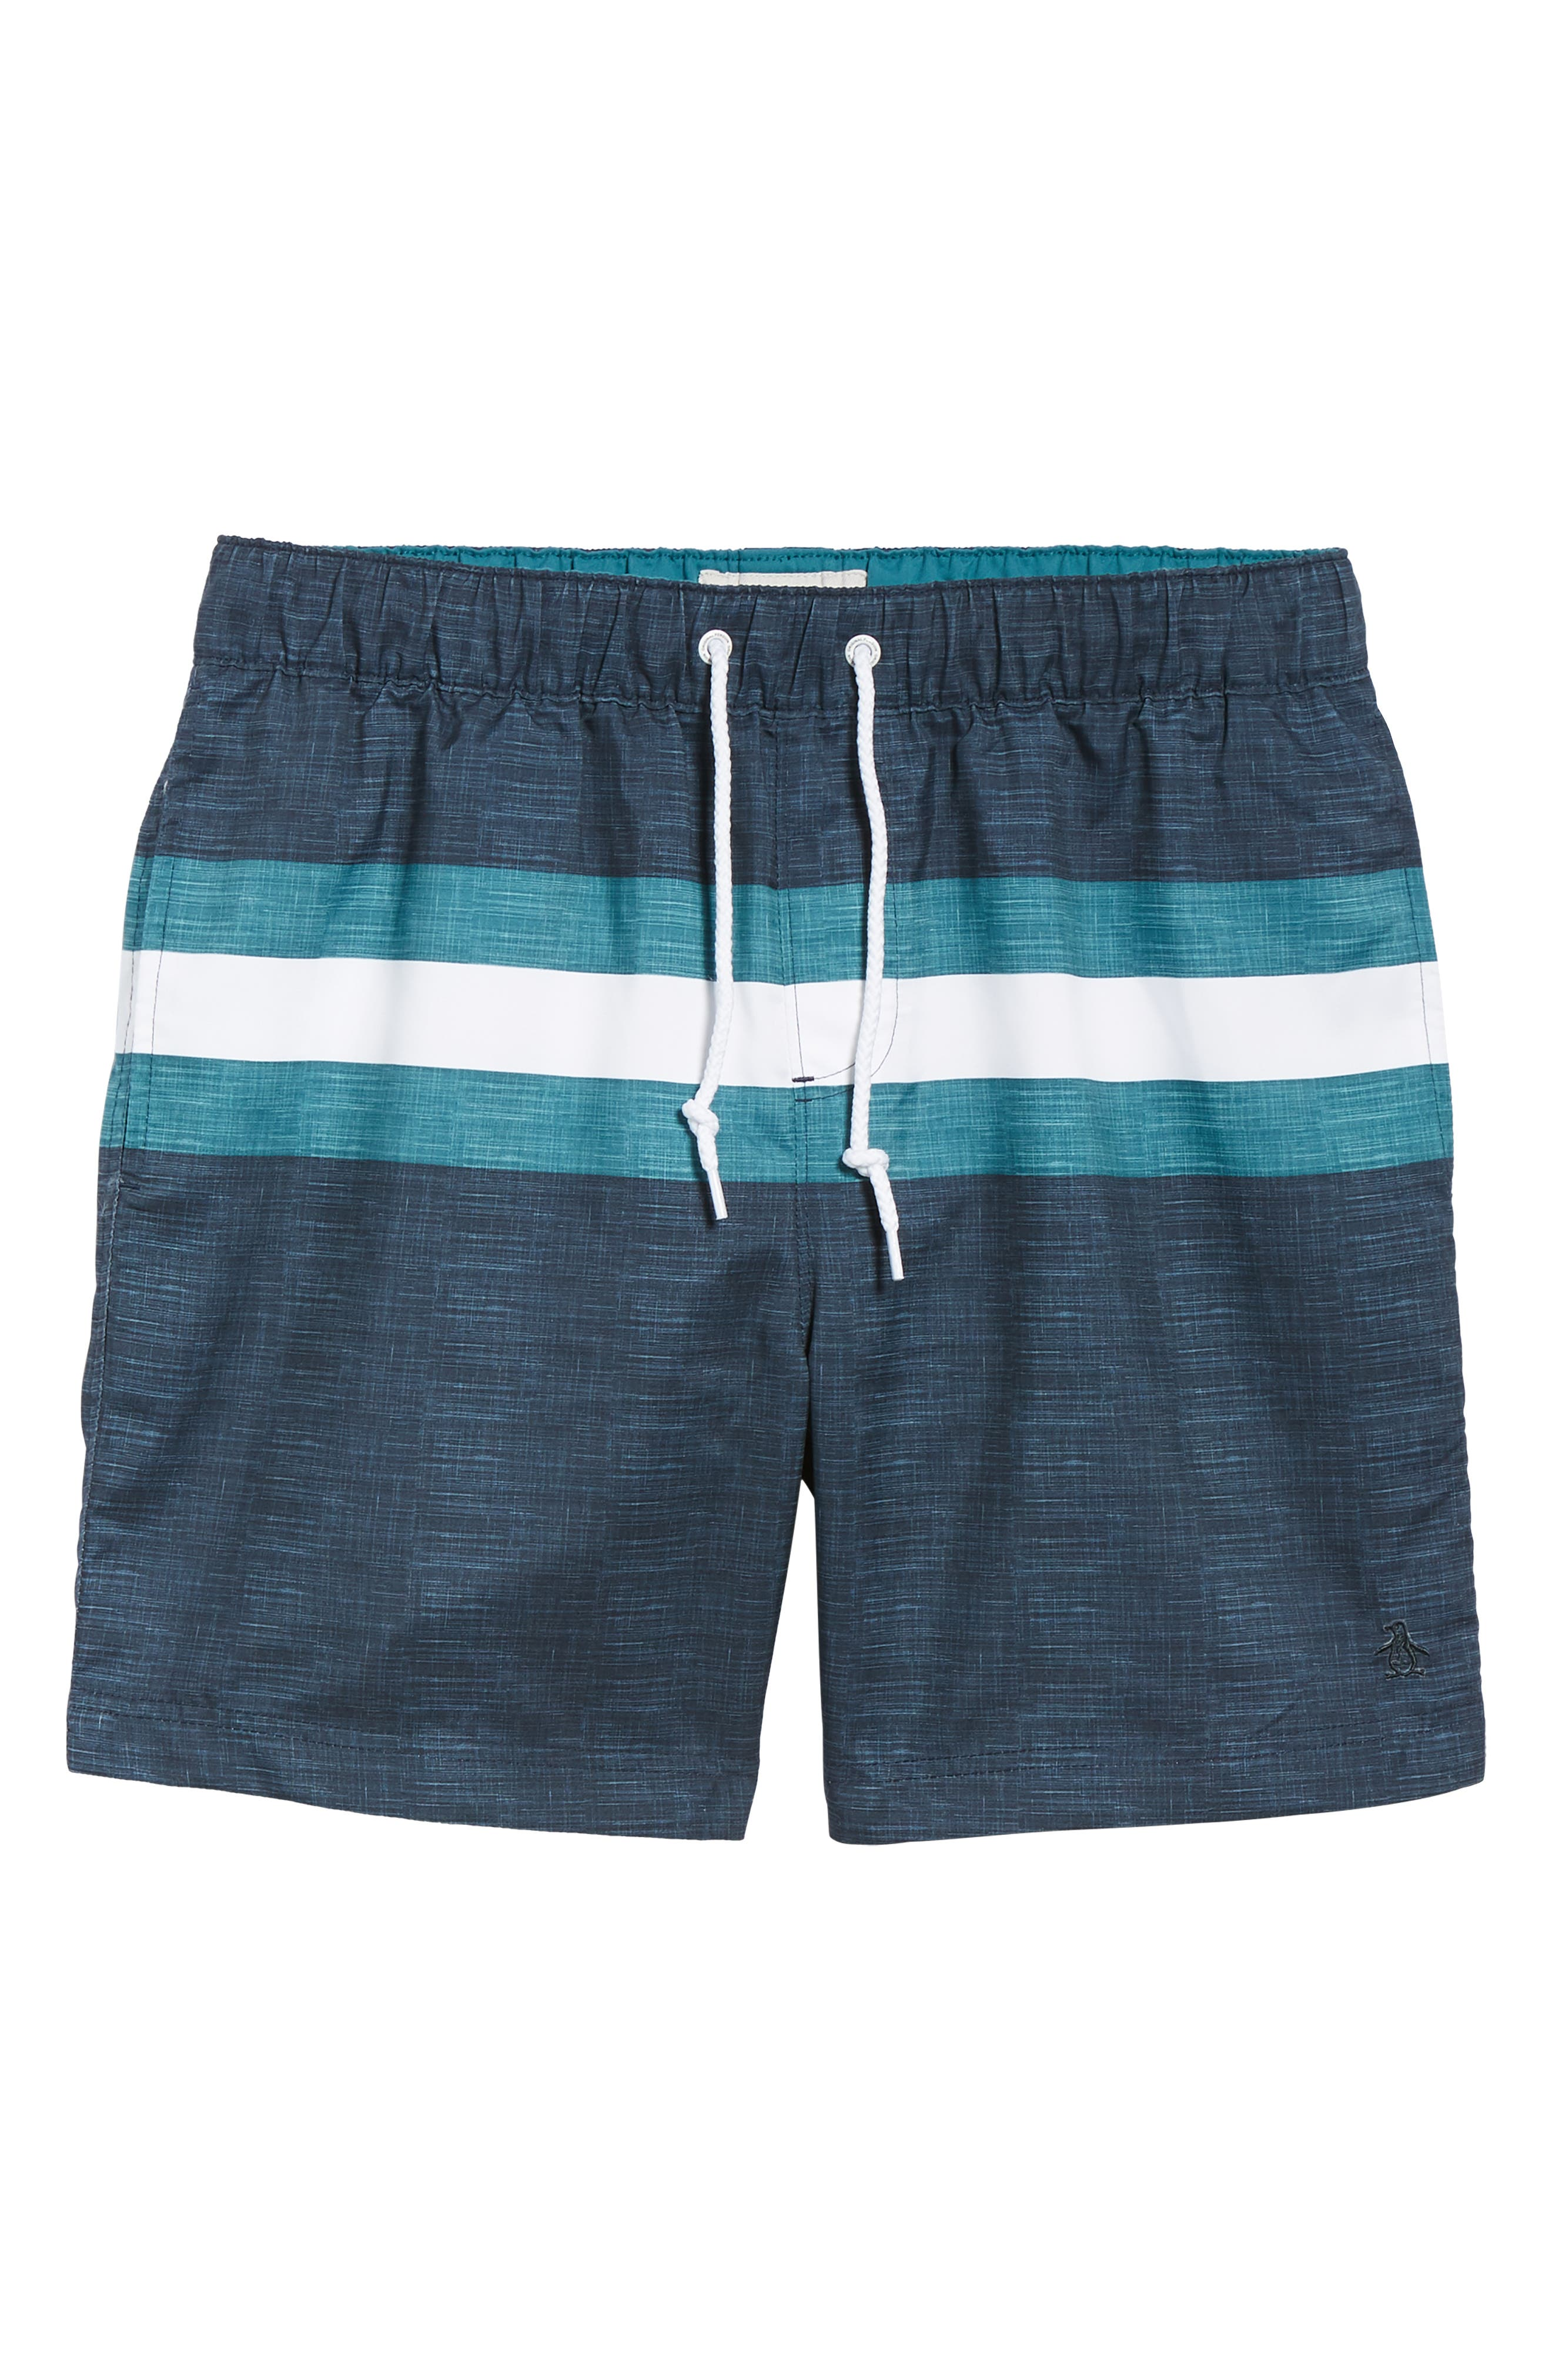 Colorblock Swim Trunks,                             Alternate thumbnail 6, color,                             DARK SAPPHIRE